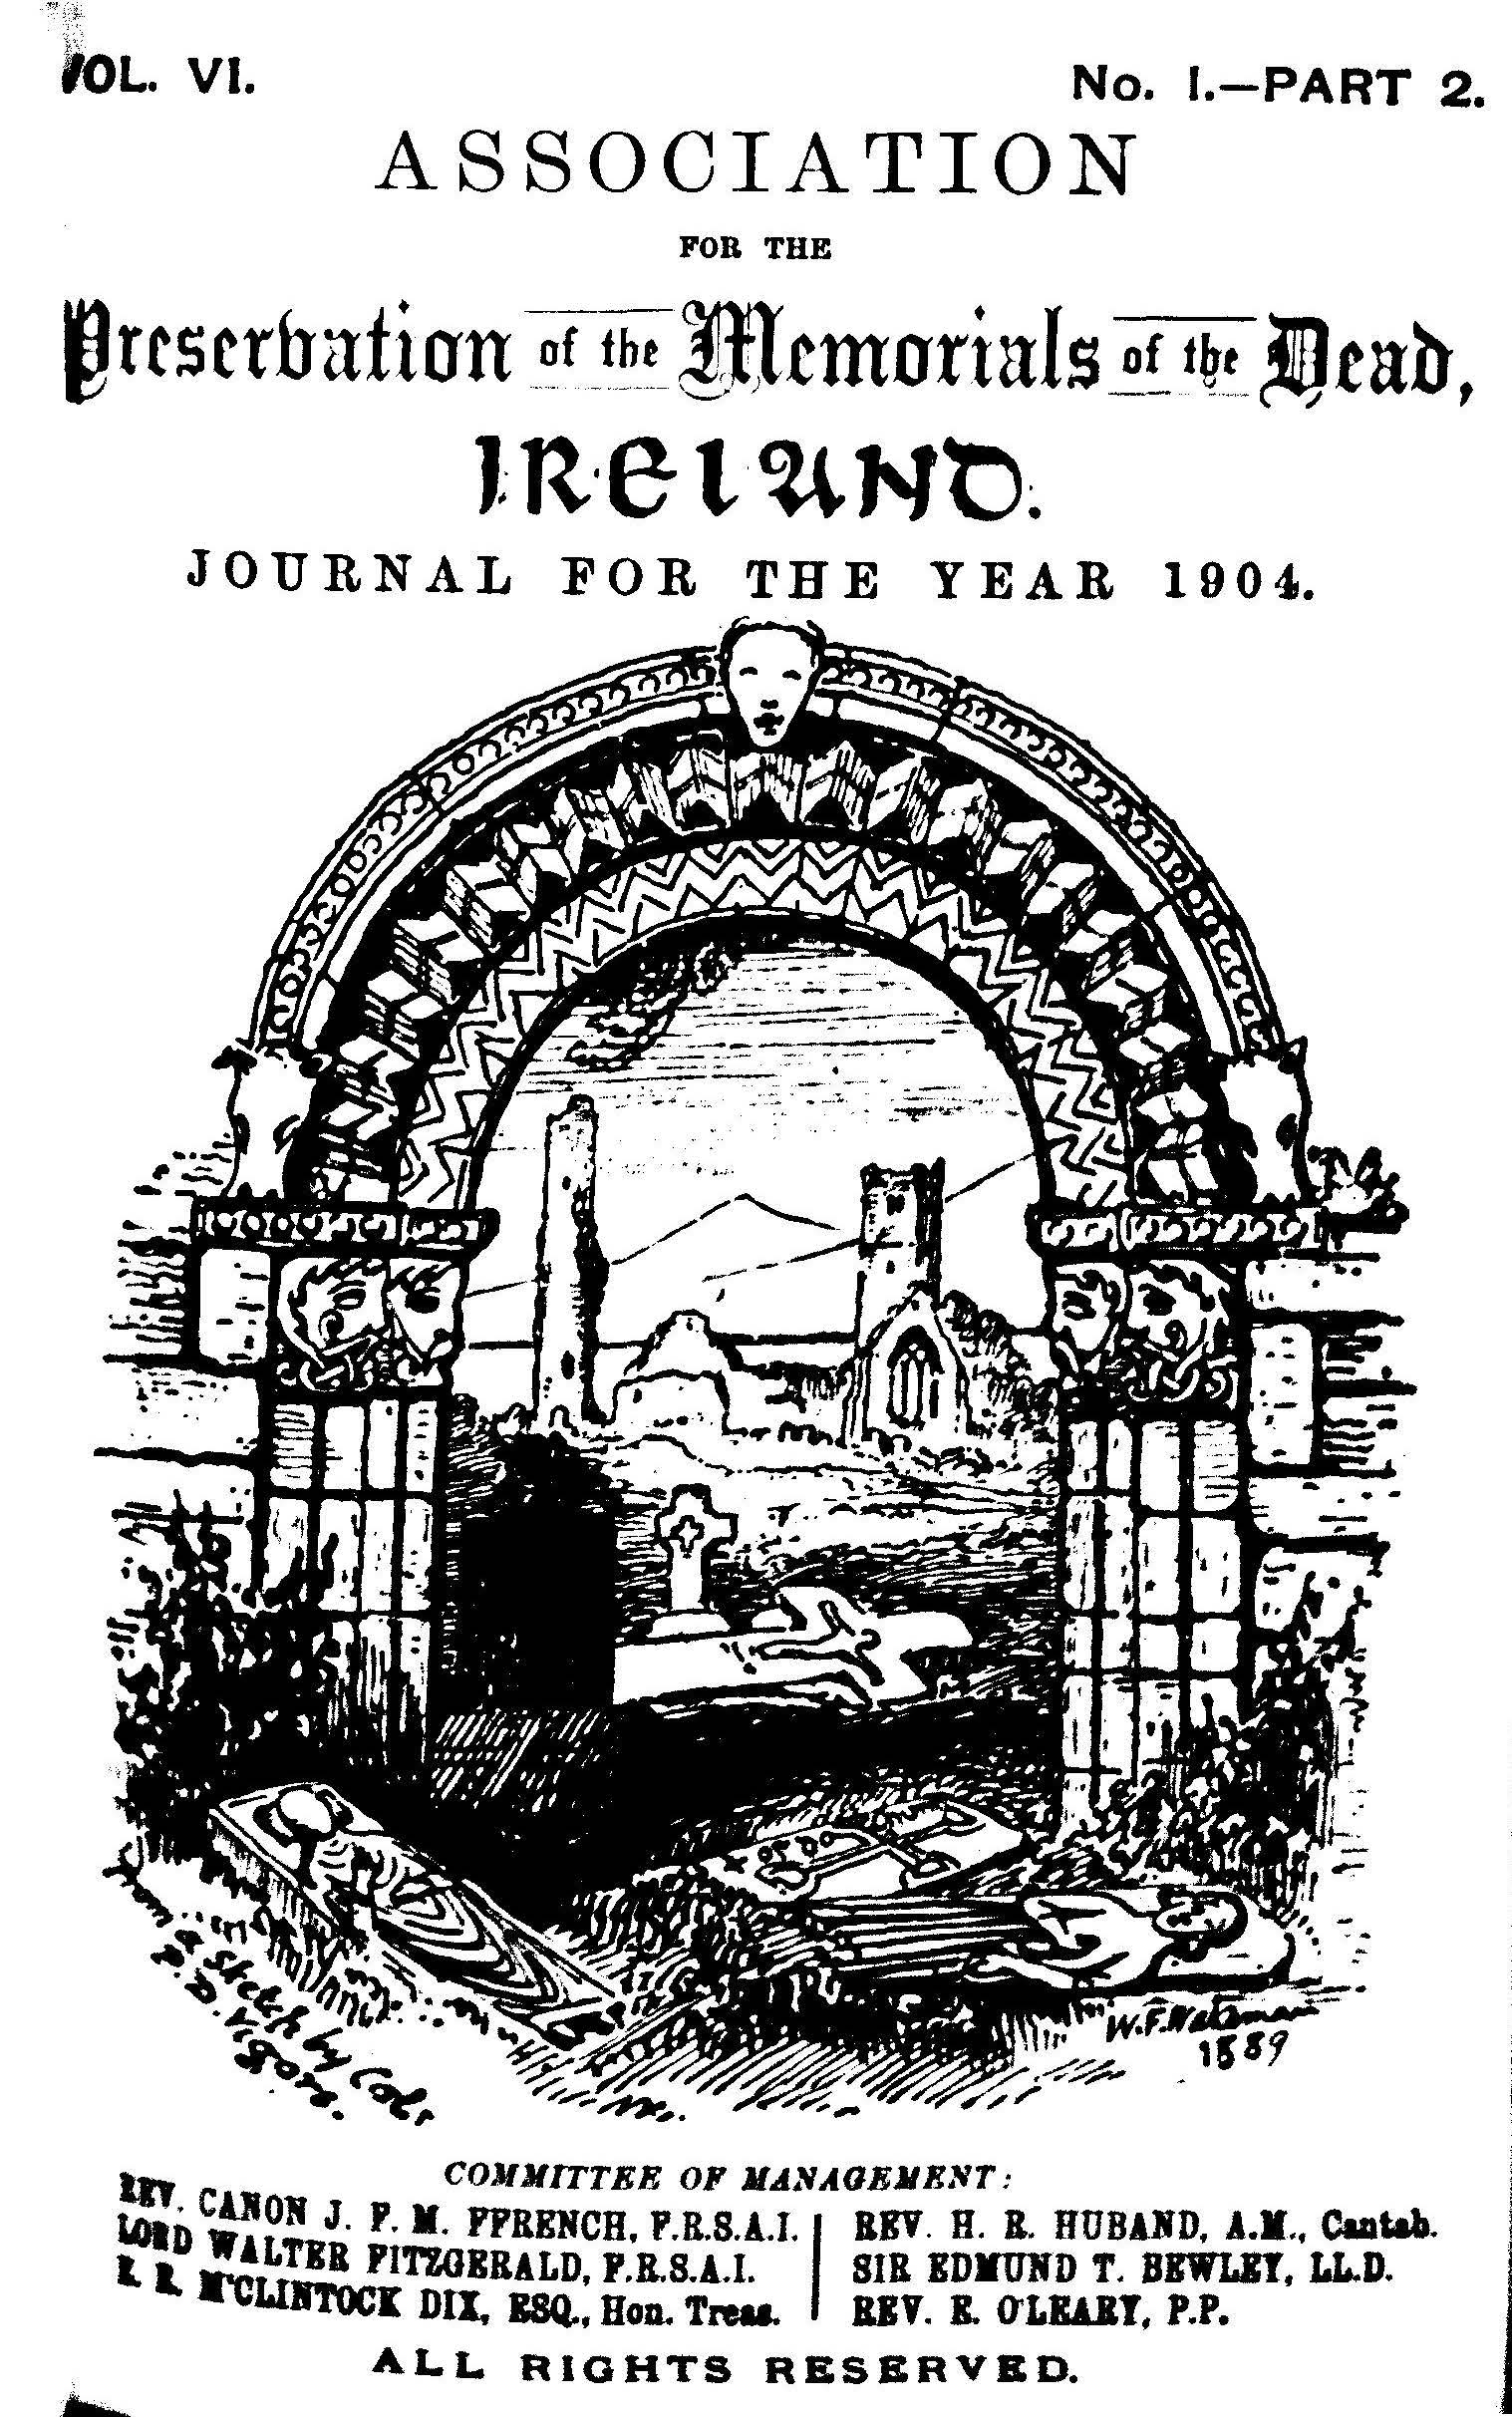 photo of Journal of the Association for the Preservation of the Memorials of the Dead. Volume VI, for the years 1904-1906. 1906